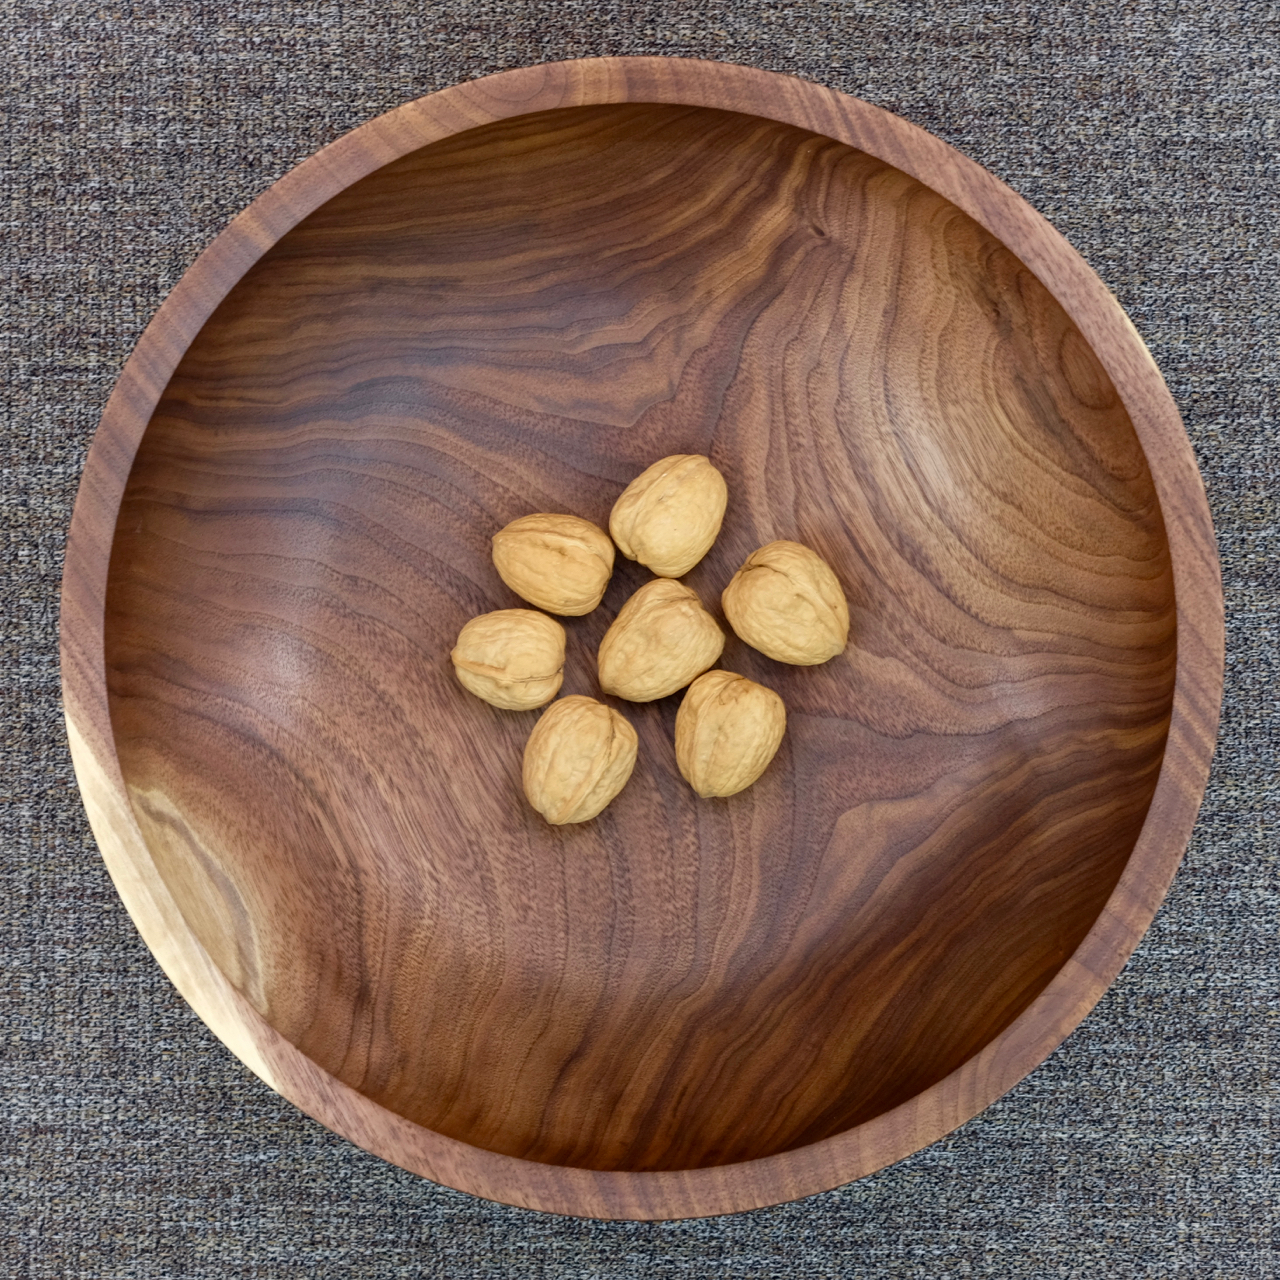 Black walnut bowl with walnuts